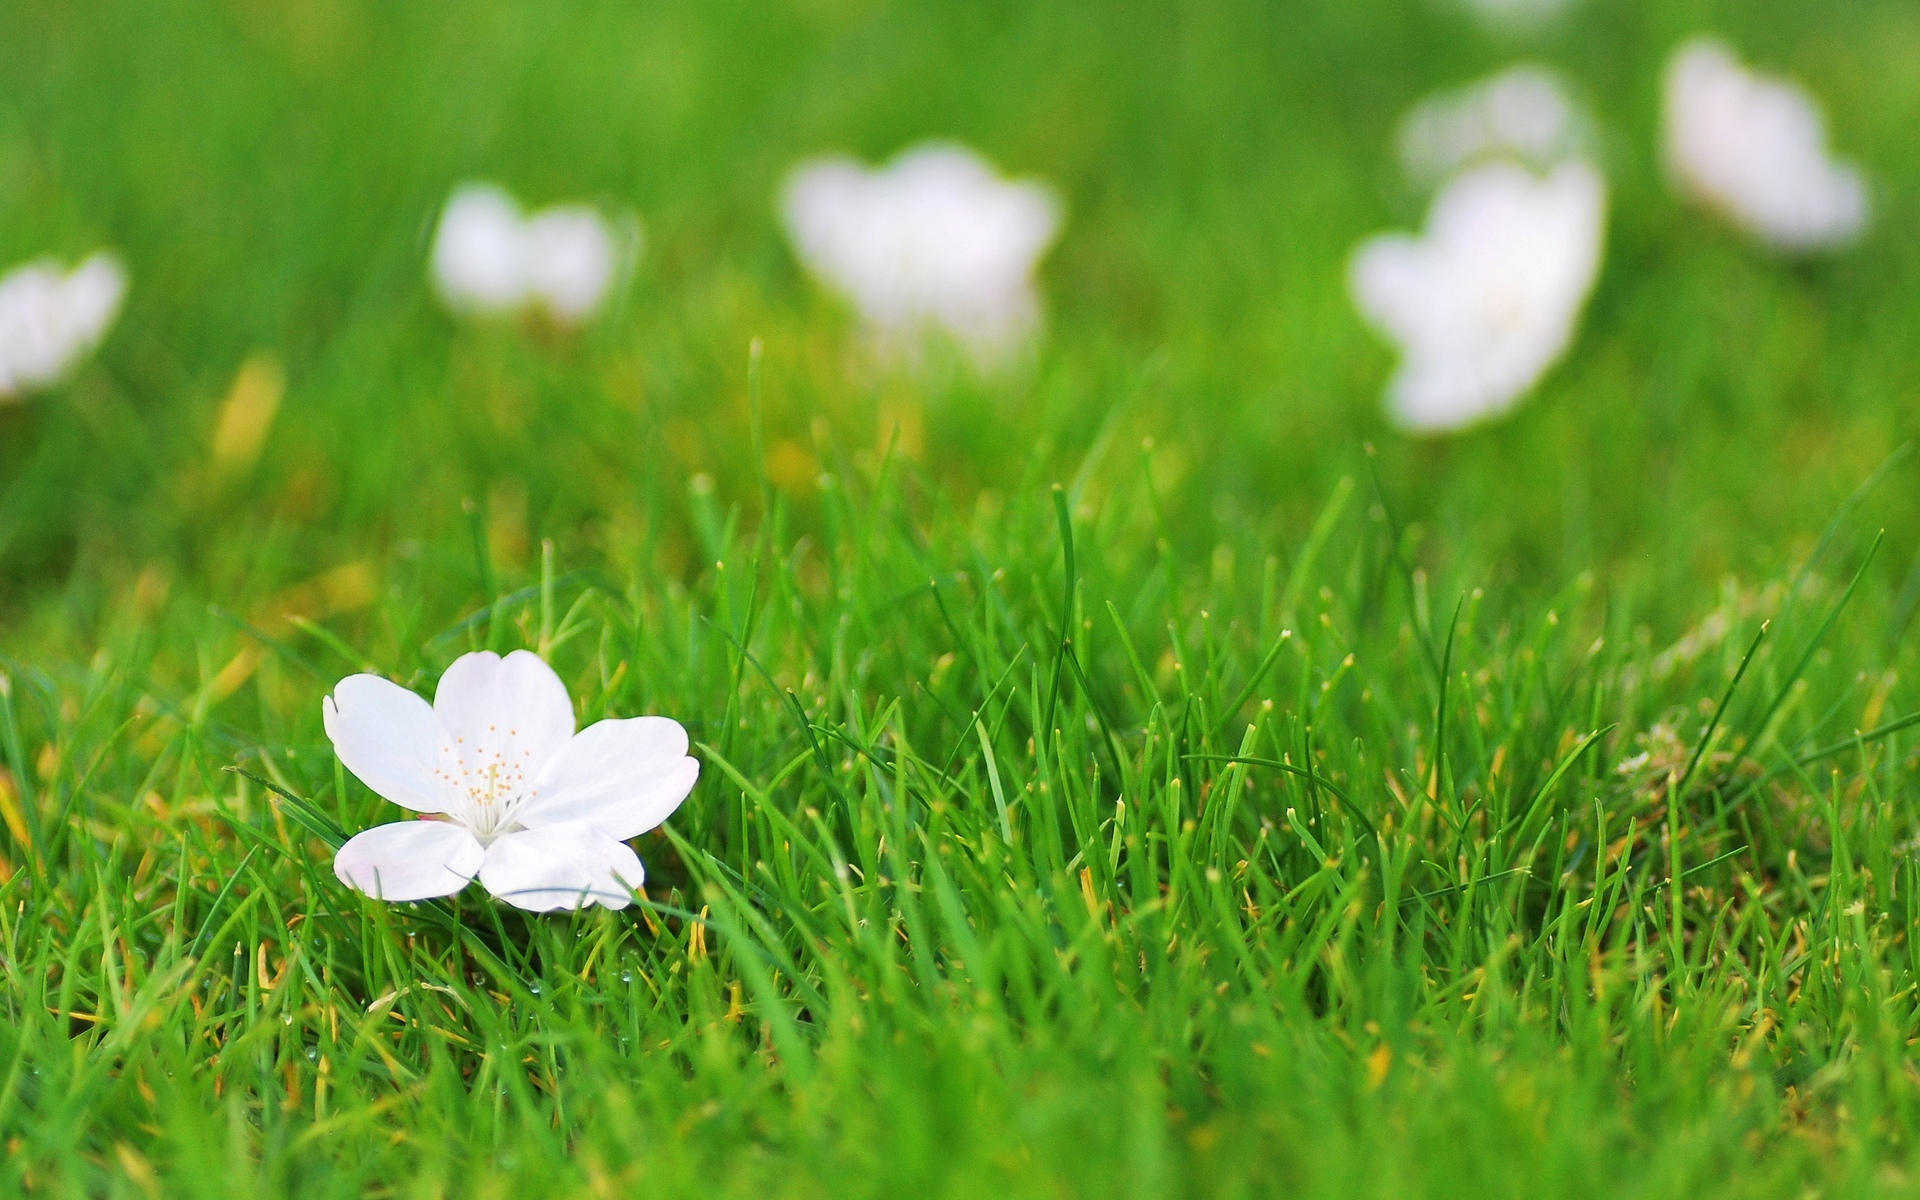 White flowers in grass 17 wide wallpaper hdflowerwallpaper white flowers in grass free wallpaper mightylinksfo